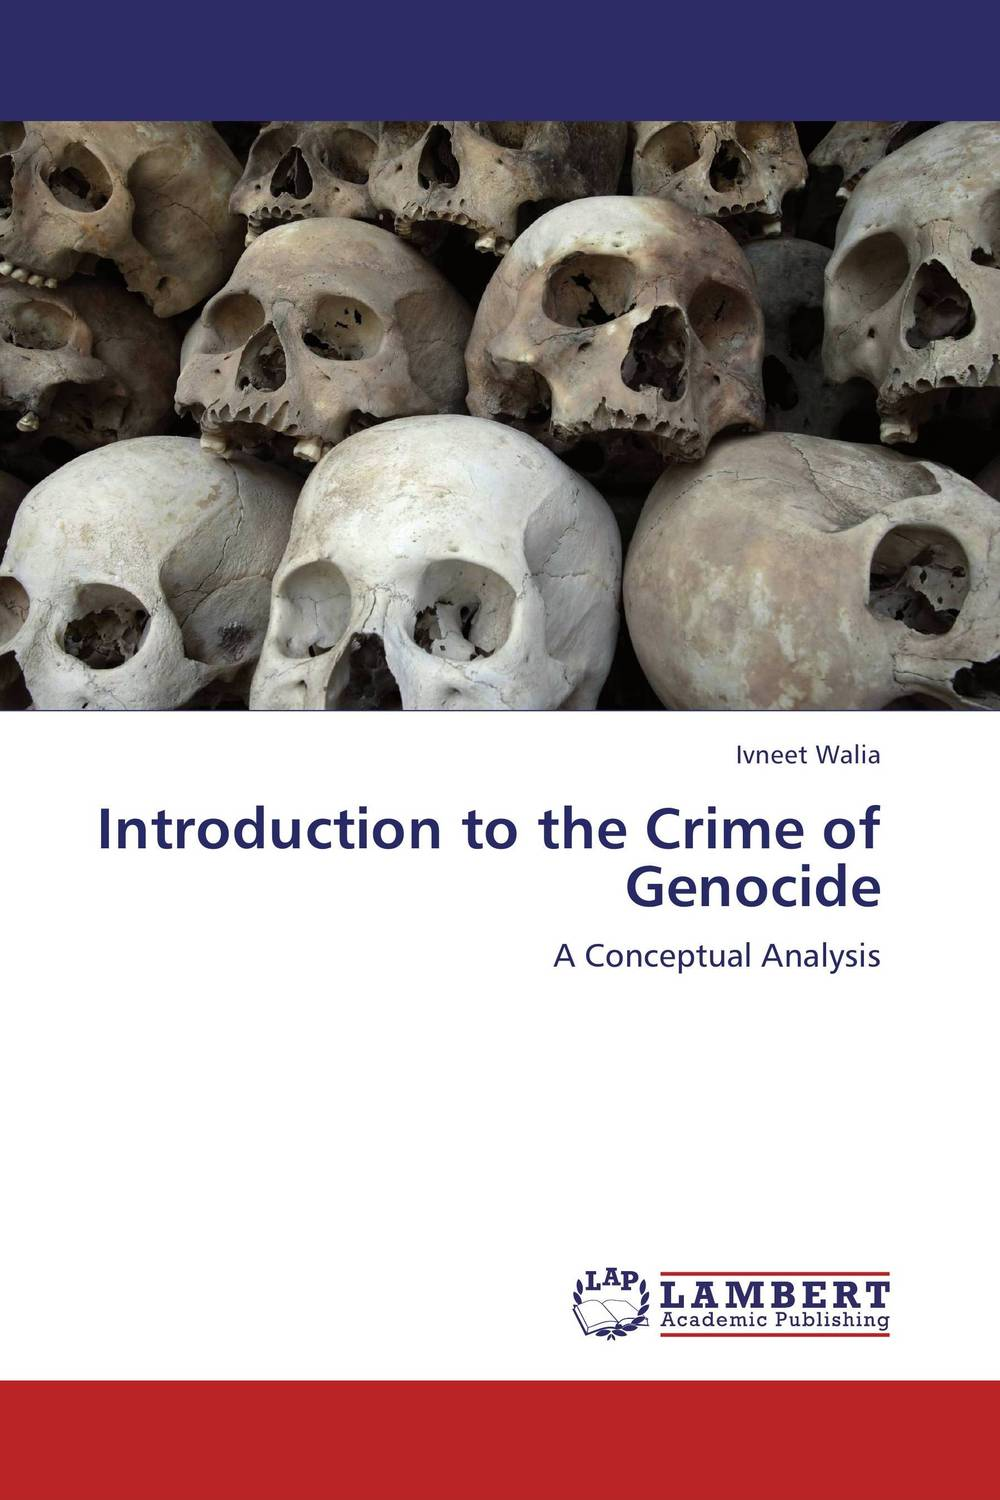 Introduction to the Crime of Genocide